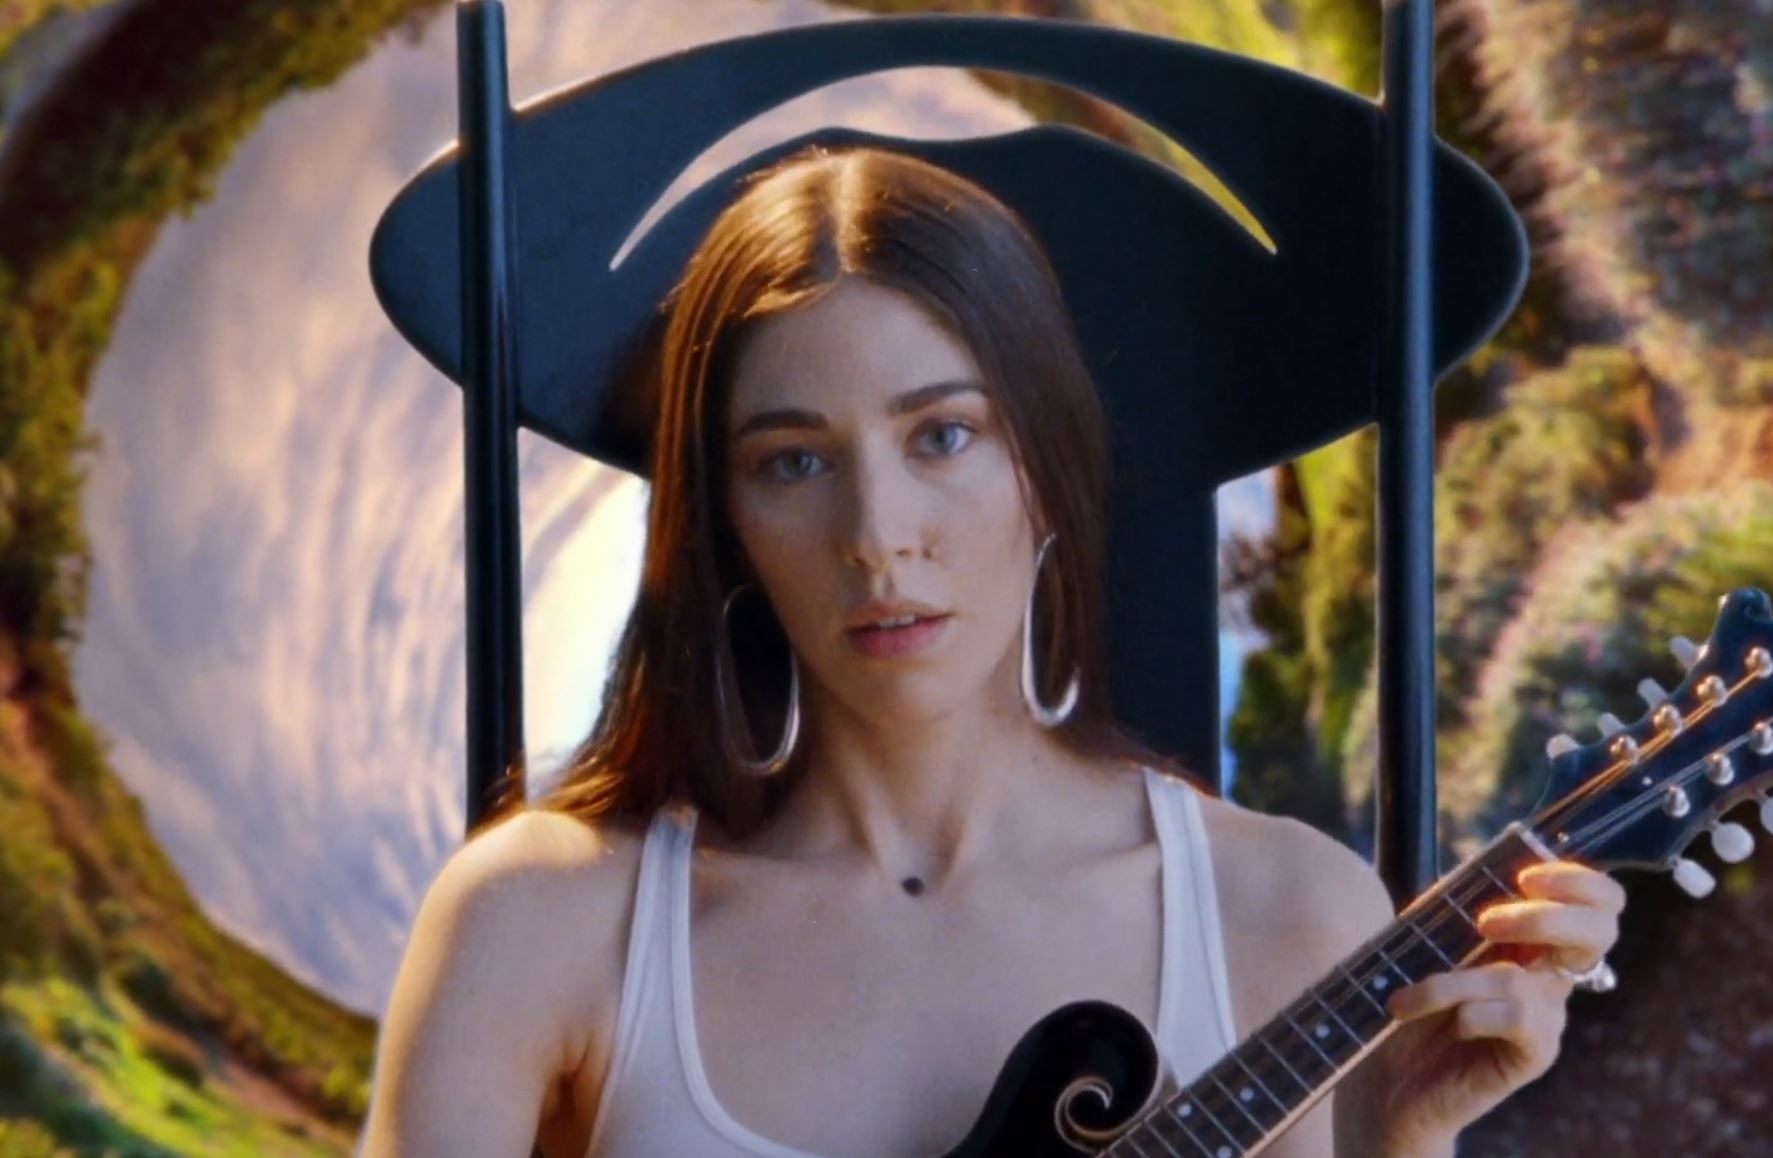 Caroline Polachek (Chairlift, Ramona Lisa) Drops New Song & Video - 'Door'